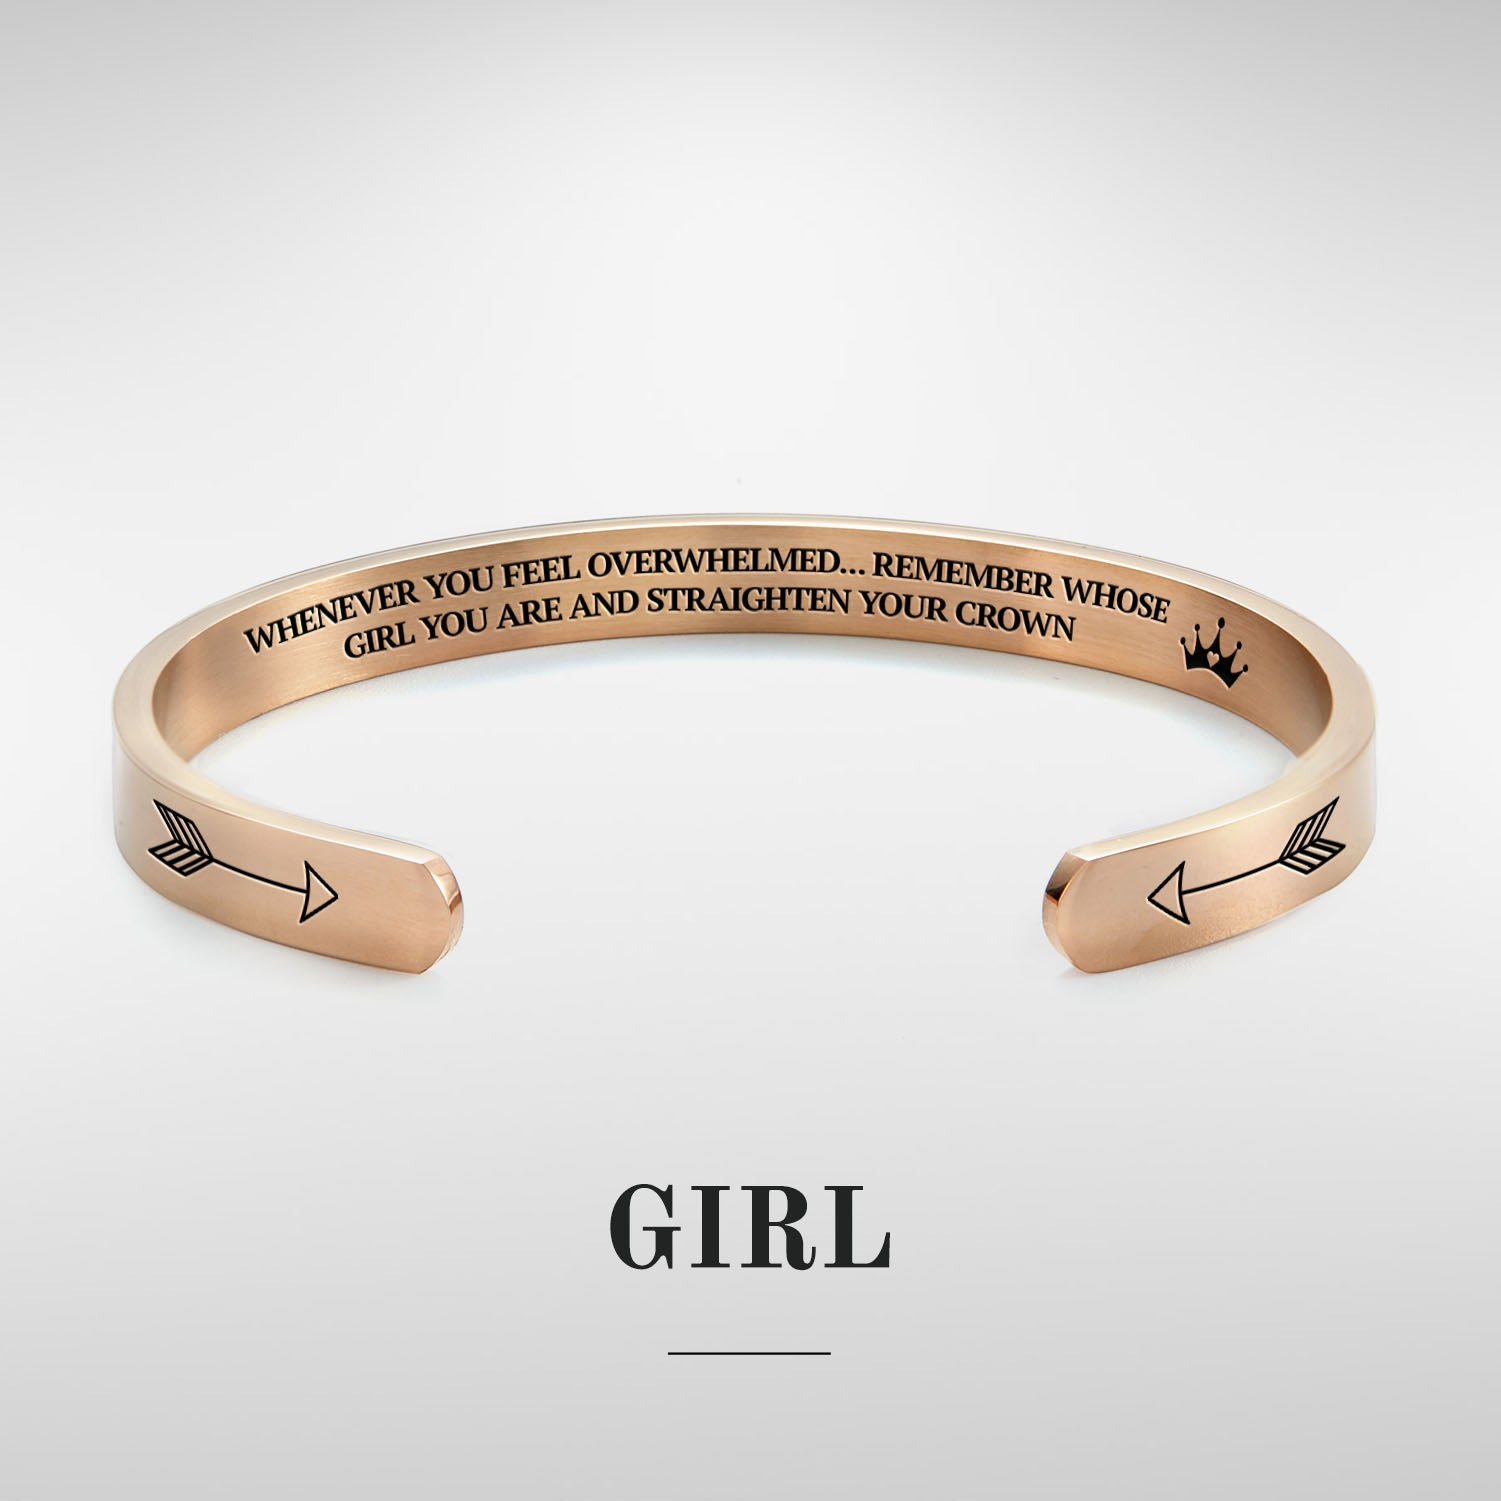 Remember whose girl you are and straighten your crown bracelet with rose gold plating